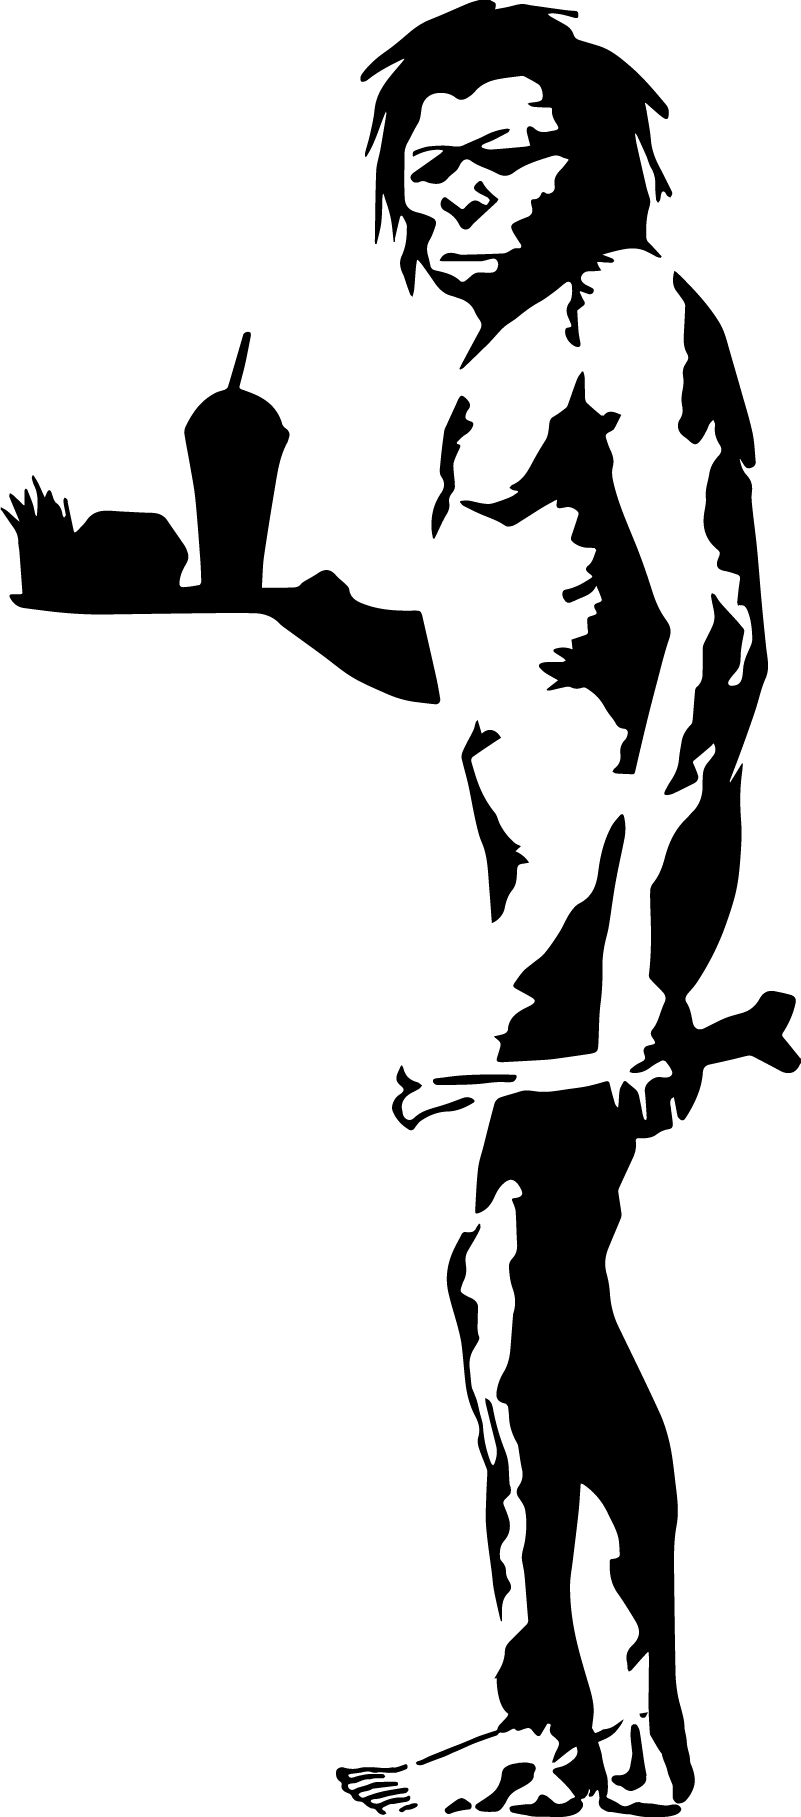 TenStickers. Banksy Caveman Wall Art Sticker. Decorate your home with this fantastic Banksy inspired wall sticker, depicting a caveman with some fast food! Zero residue upon removal.